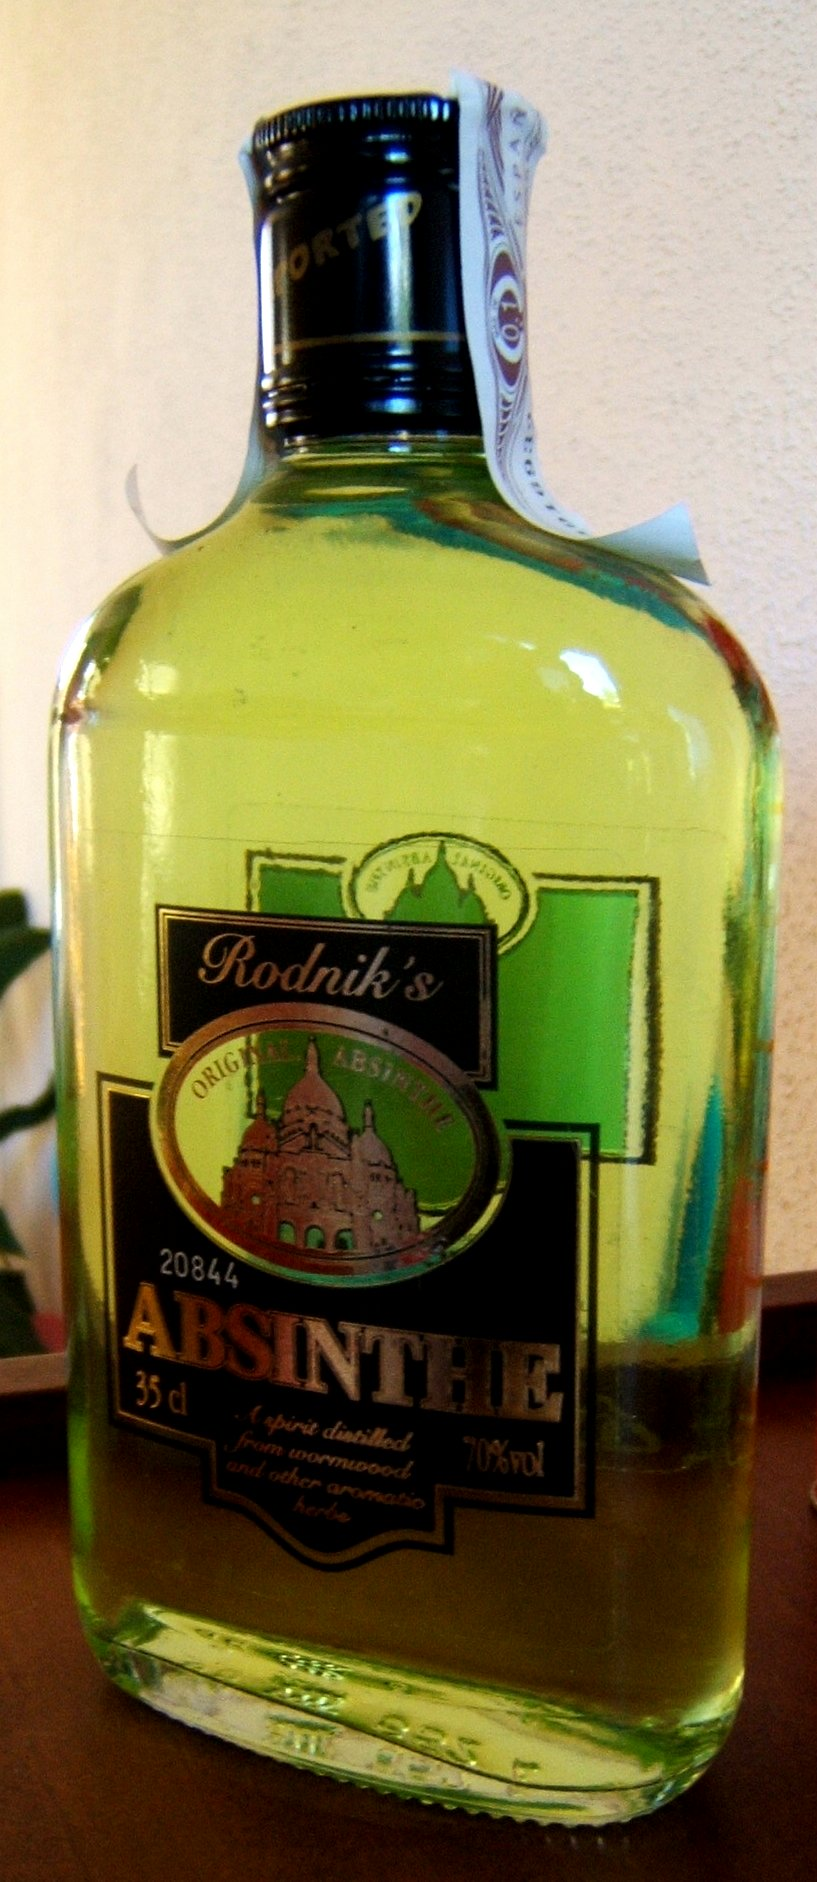 File:Absinthe bottle.JPG - Wikimedia Commons